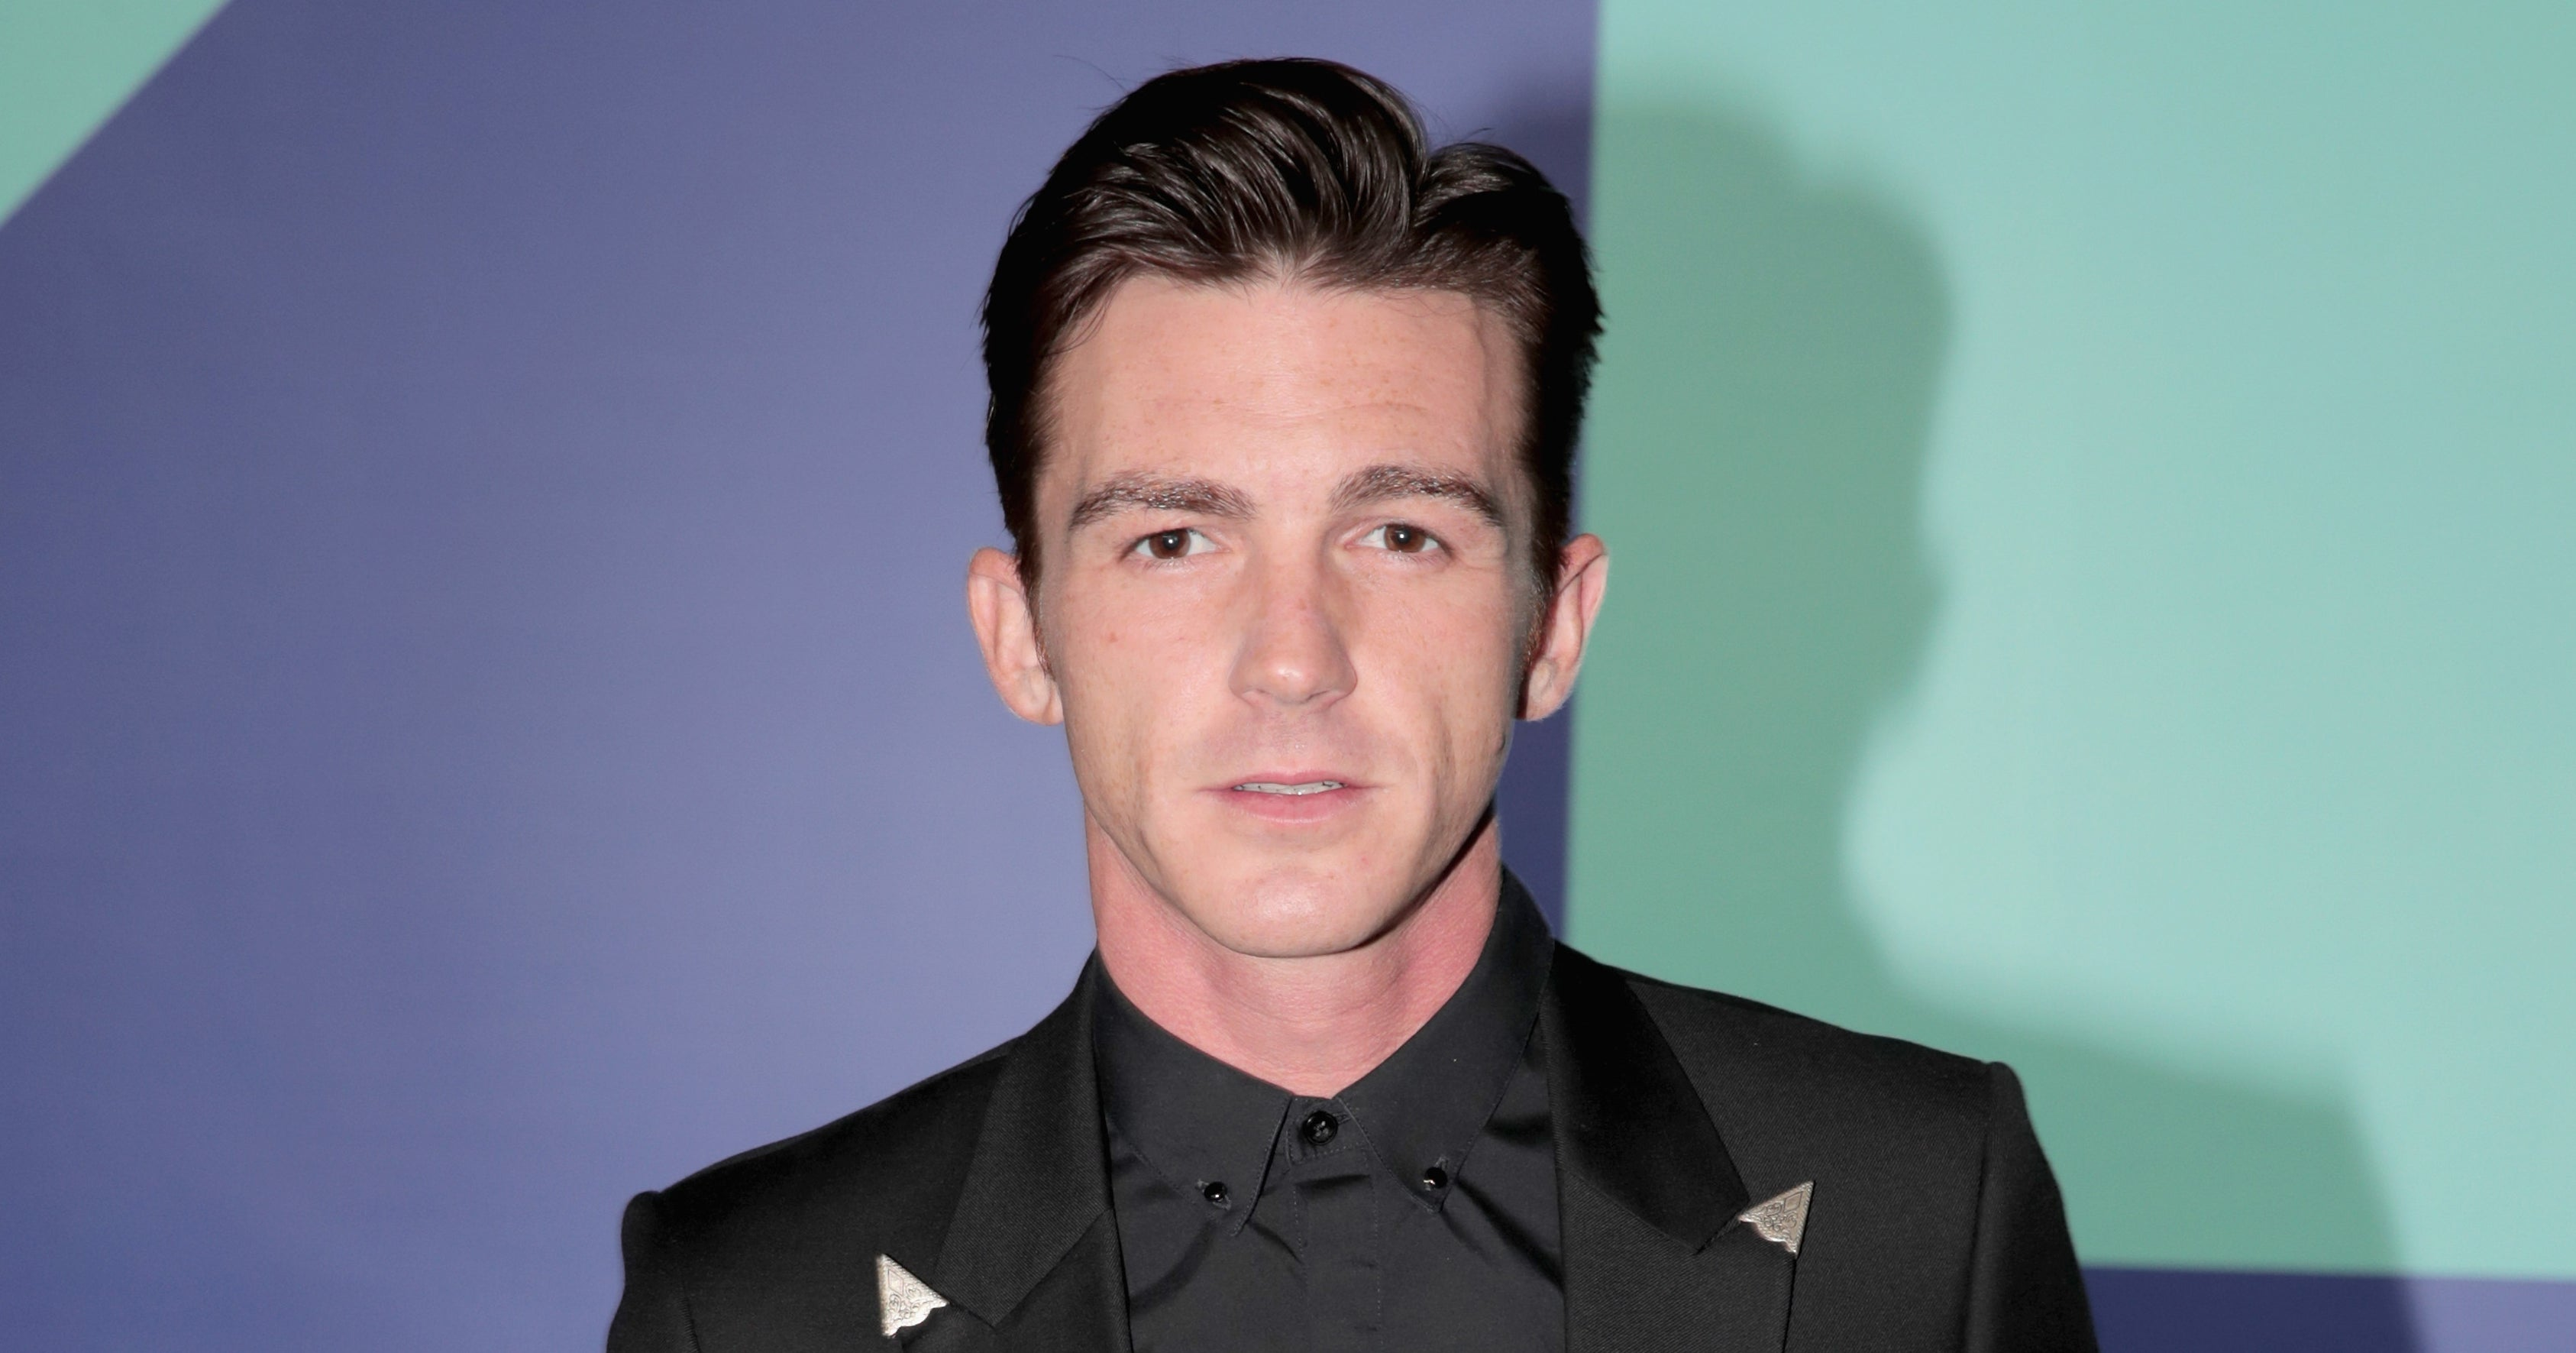 Drake Bell Pleads Guilty To Child Endangerment Charges